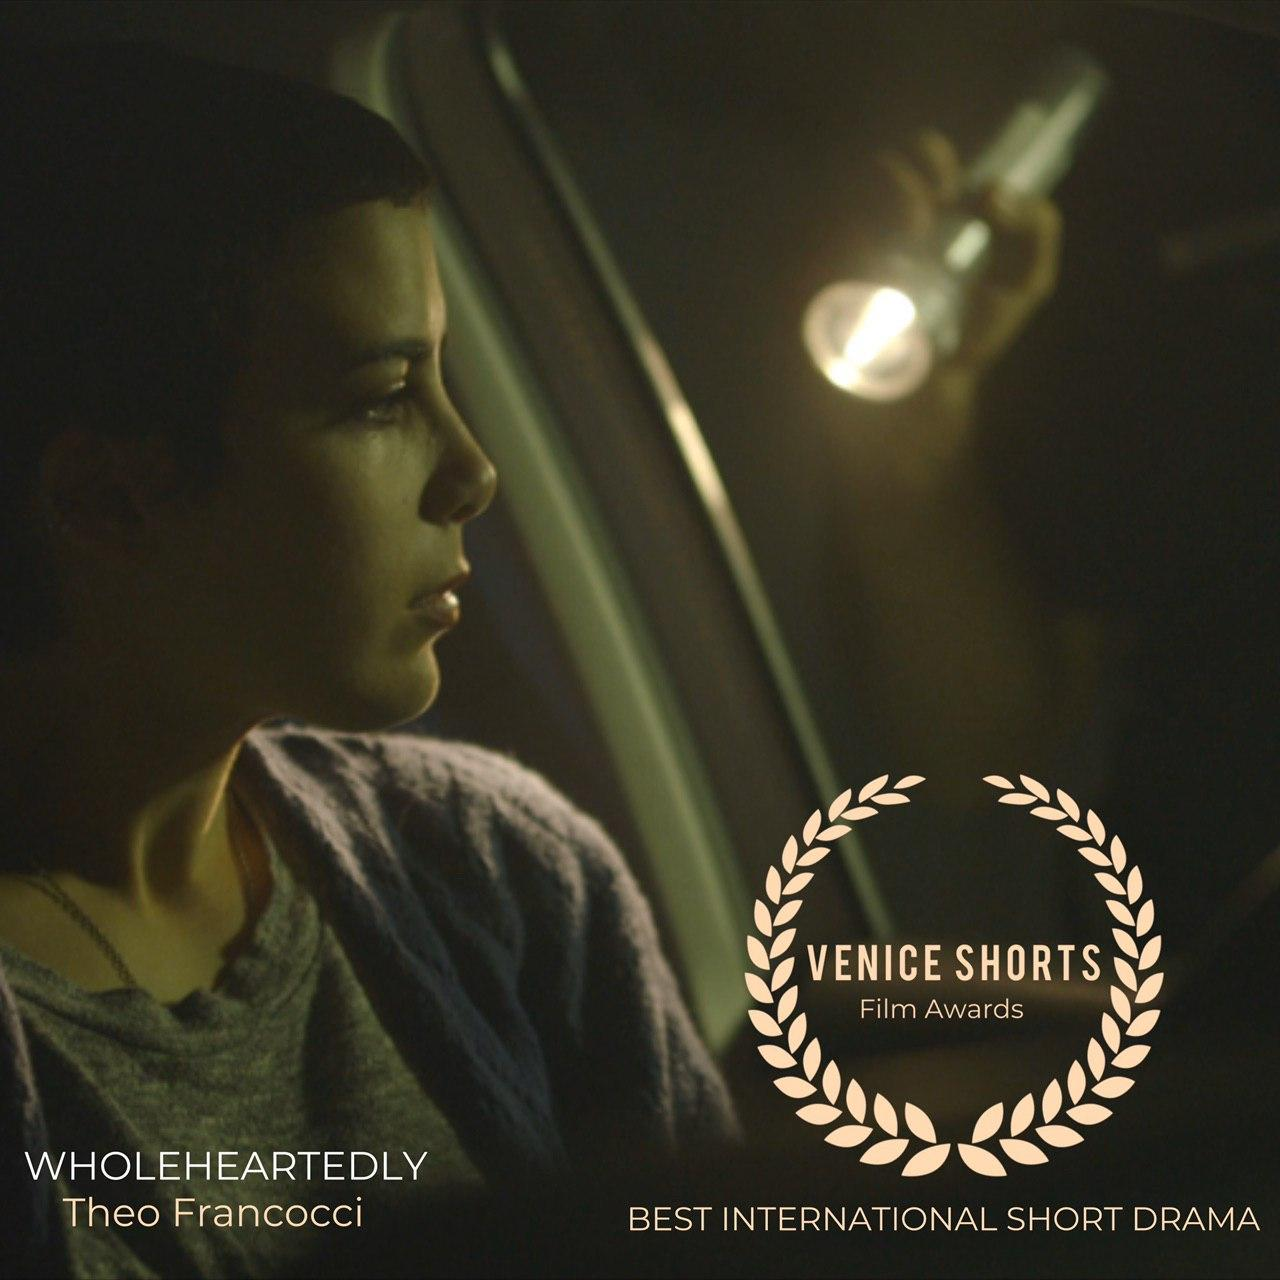 The winners of this edition of the Venice Short Film Awards are a great selection of amazing international talent in the world of independent film.